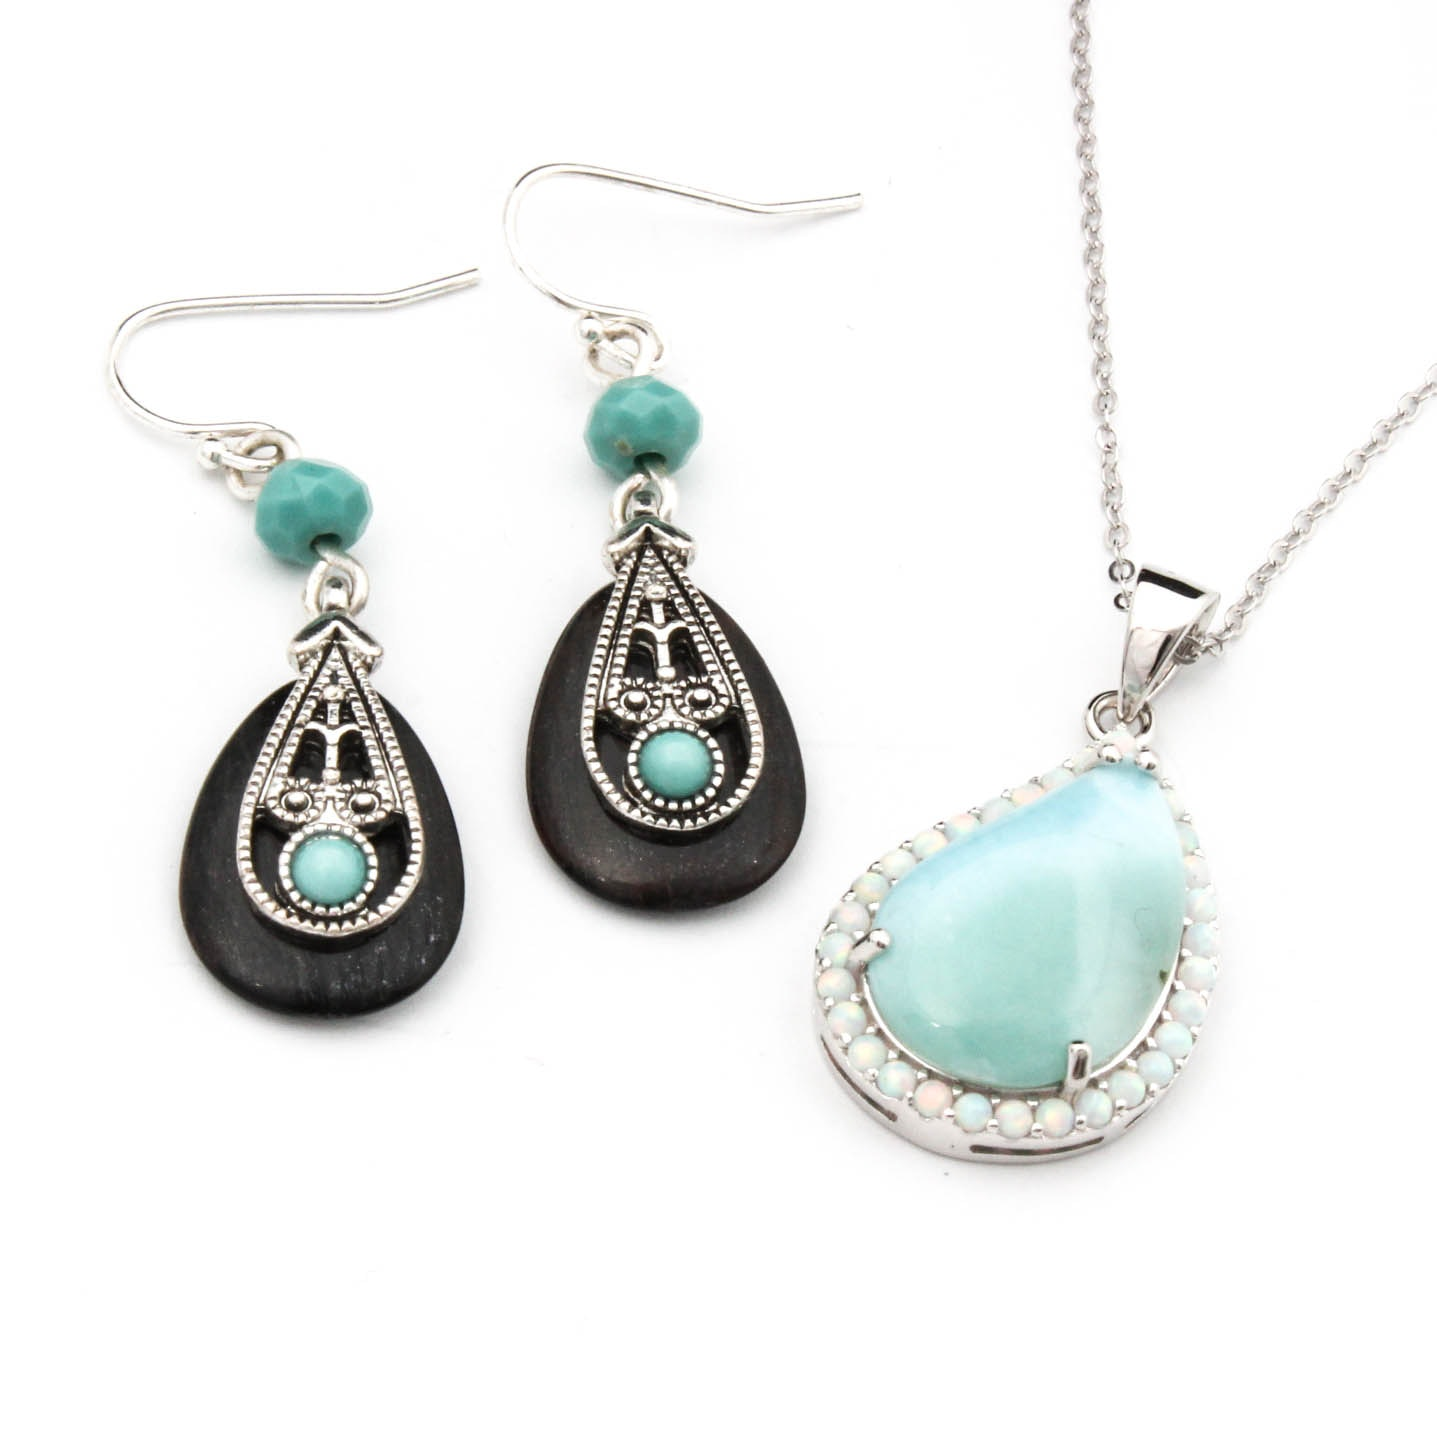 Sterling Silver Larimar and Opal Necklace and Ebony and Turquoise Earrings